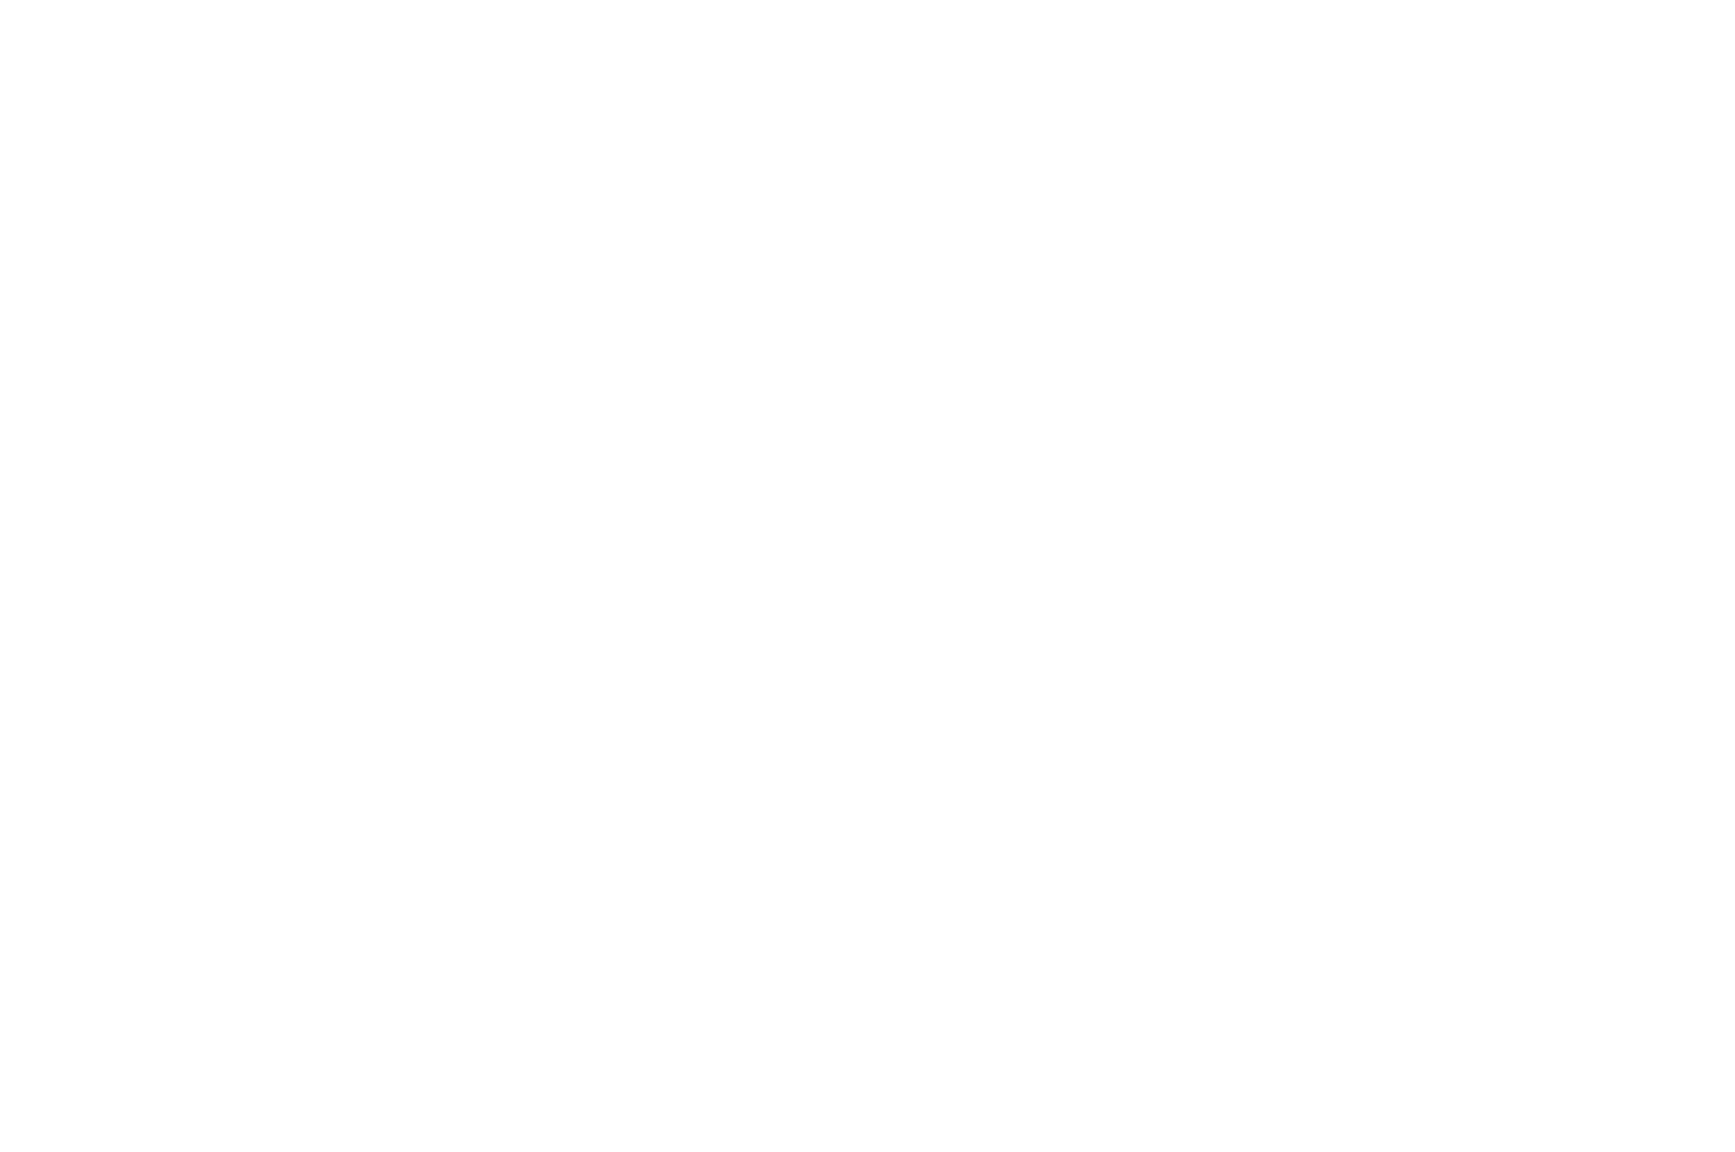 OFFICIAL SELECTION - Indie Night Film Festival - 2016